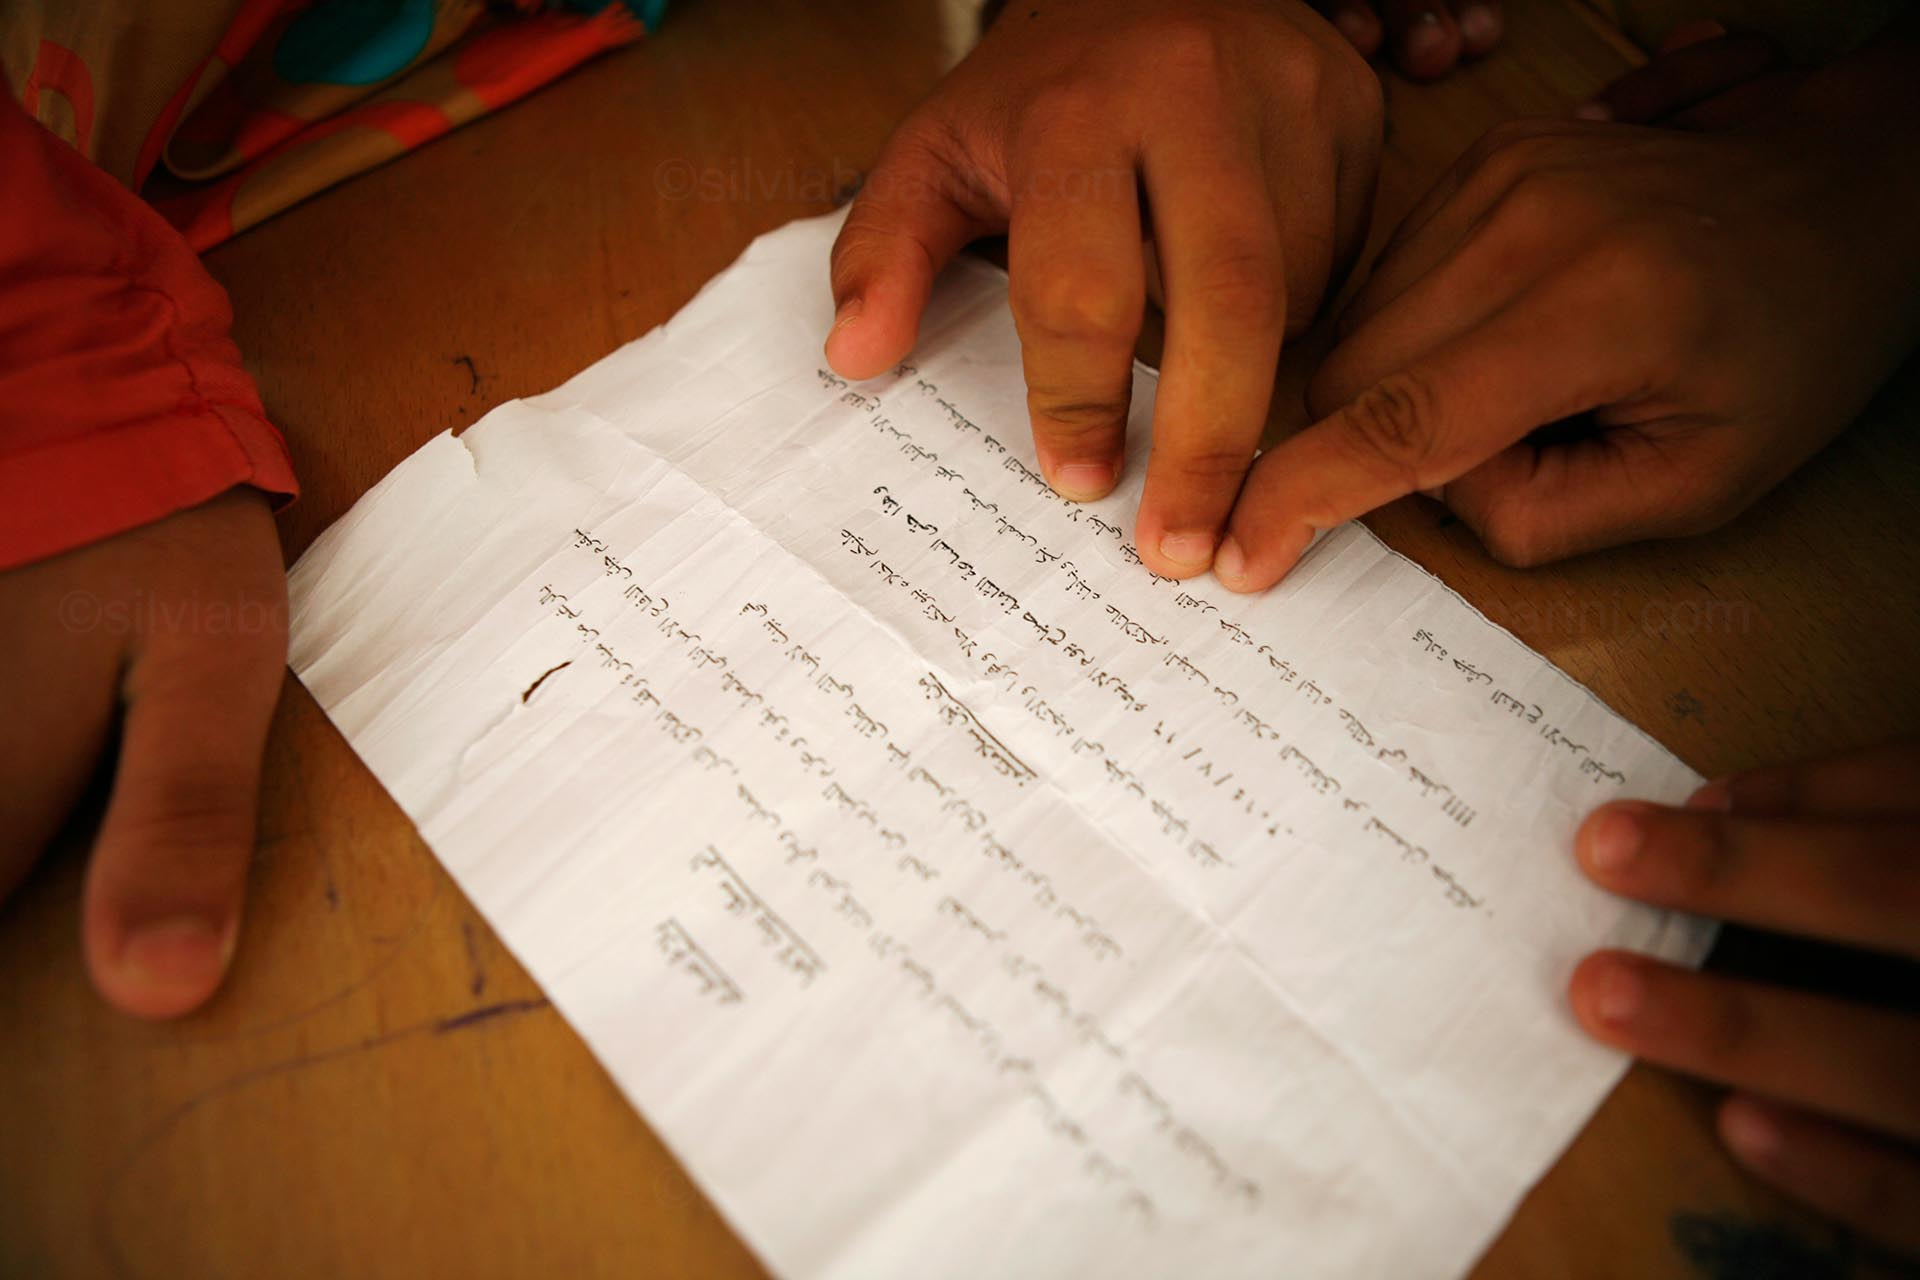 Children from the northern city of Beit Hanoun, now displaced to a UNRWA school in Gaza, read the leaflet that the Israeli air force dropped on their city. The leaflet warns civilians to evacuate the area before an imminent attack. Gaza, July 2014